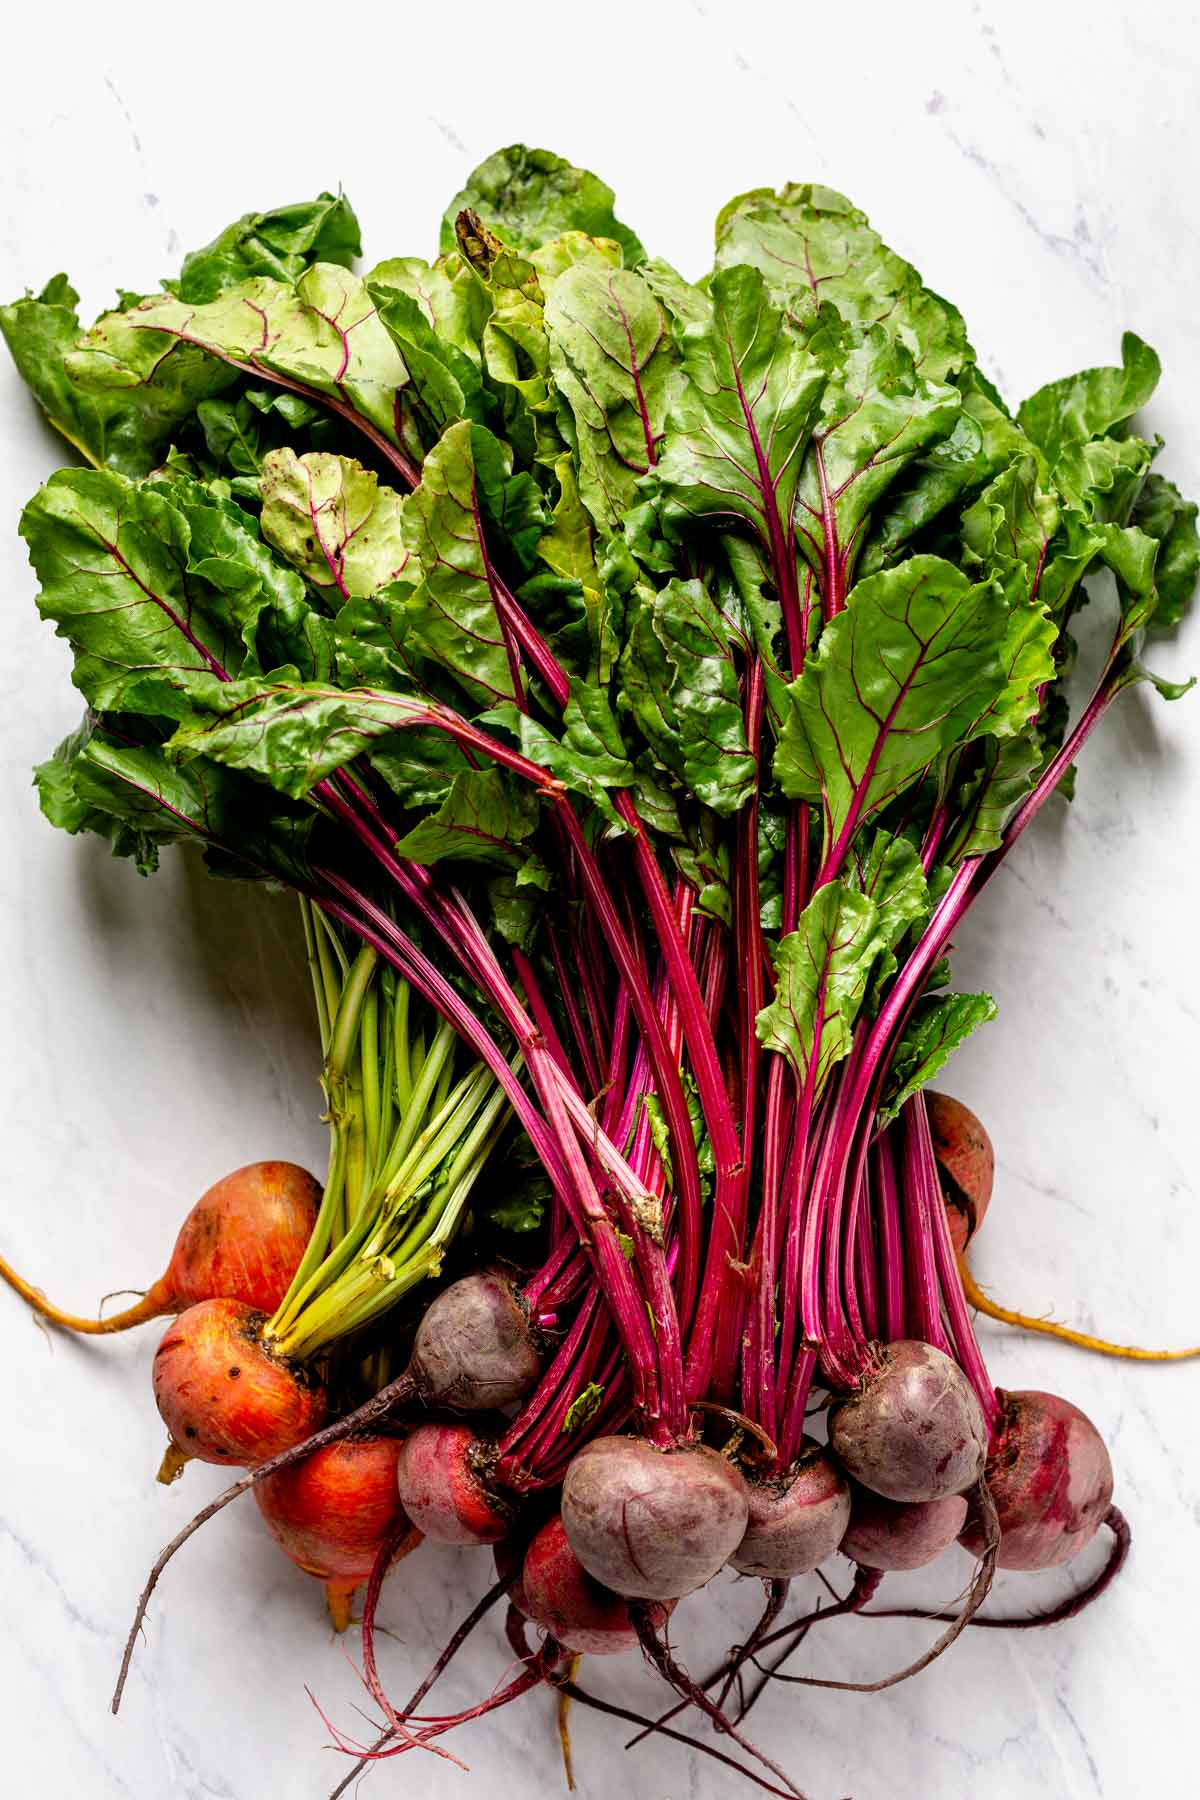 beets with greens attached